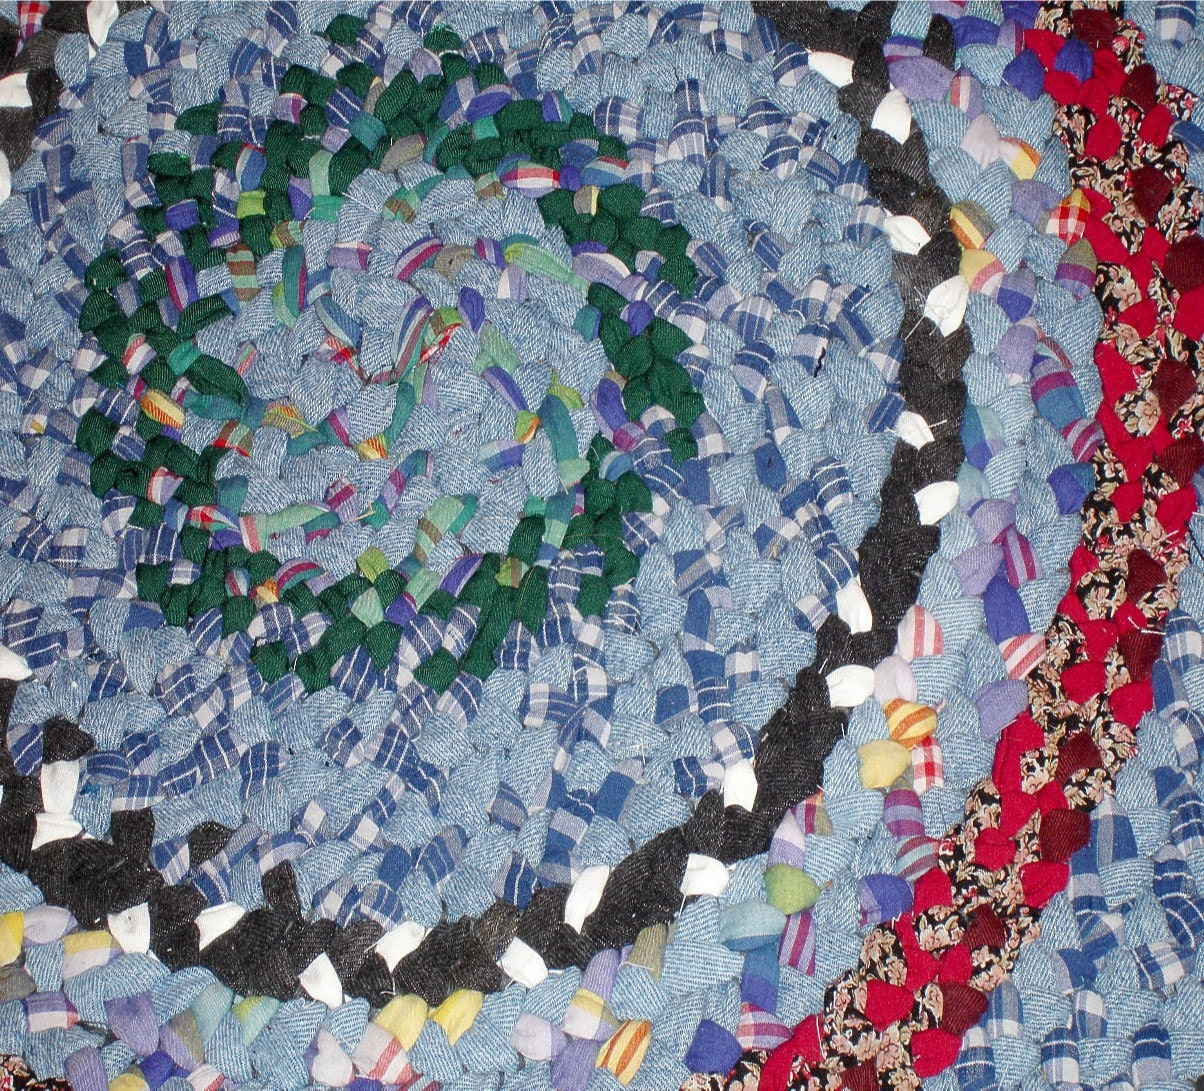 Farmer Jones 40 Inch Braided Rug In Recycled Denim And Cotton